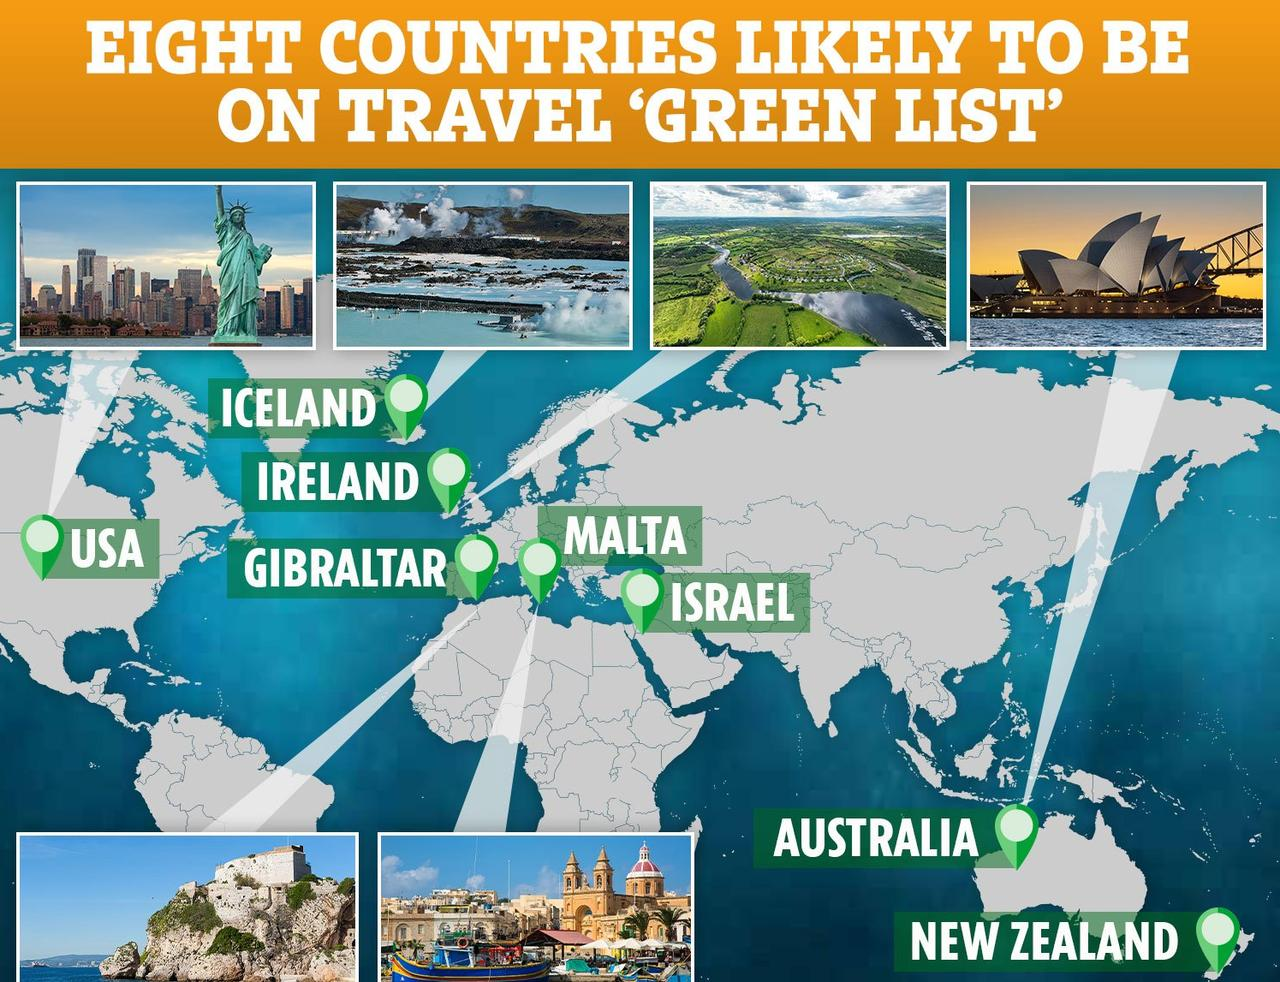 Some of the countries likely to get put on the Green list.